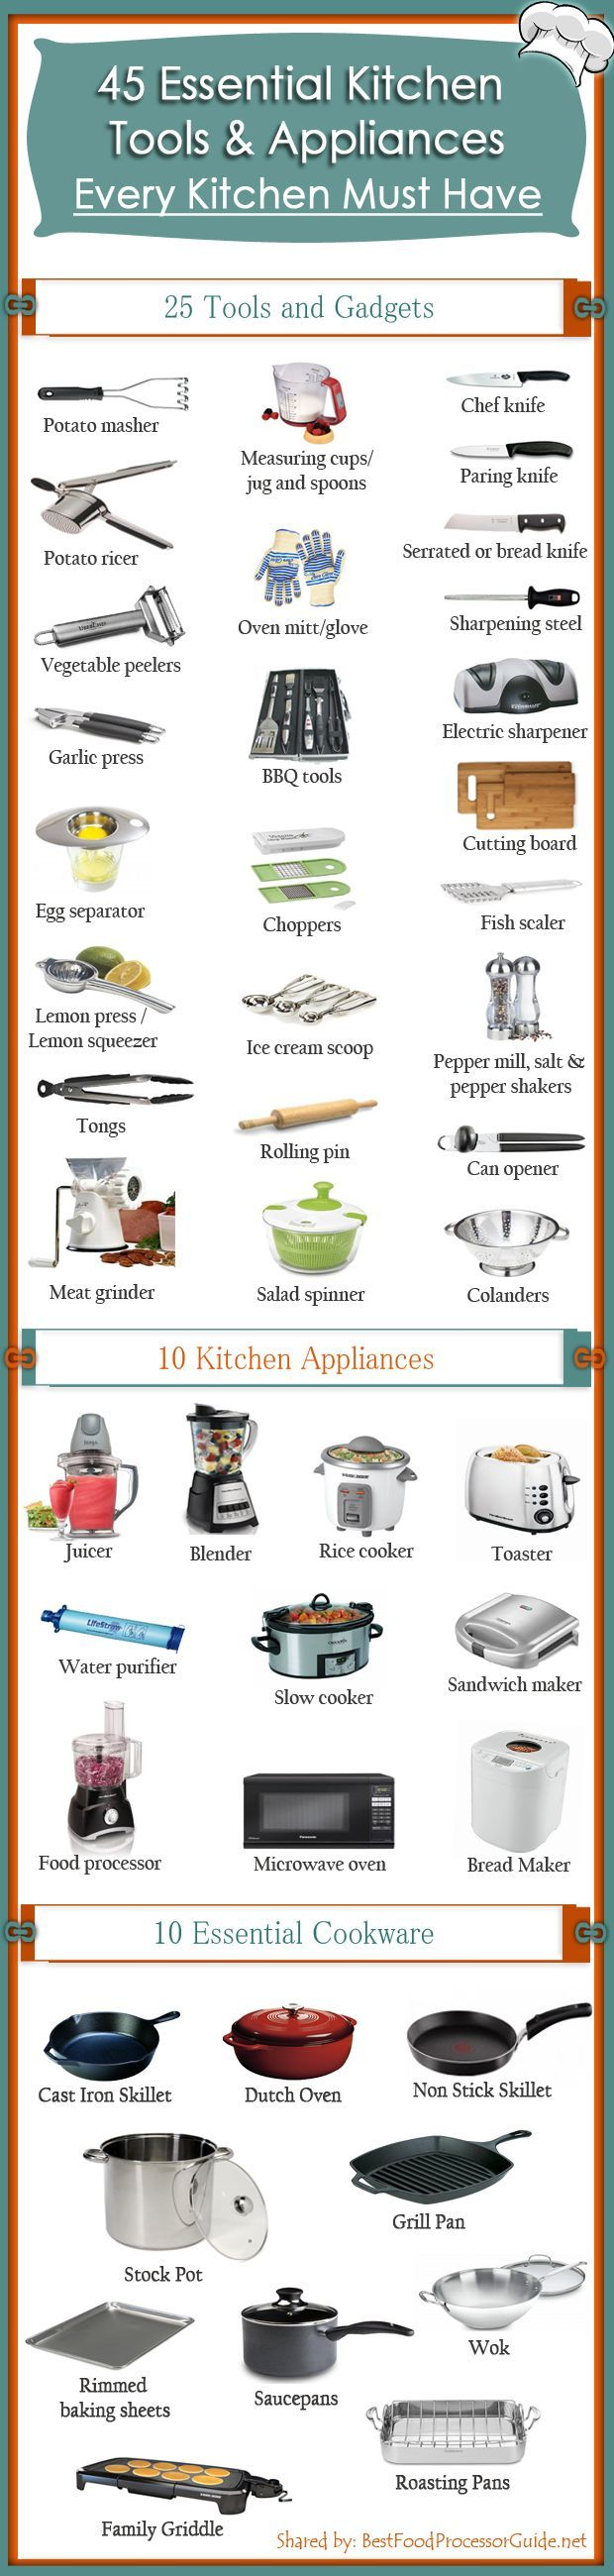 Uncategorized Kitchen Utensils And Appliances best 25 kitchen utensils list ideas on pinterest 45 essential tools and appliances every must have designed by bdhire